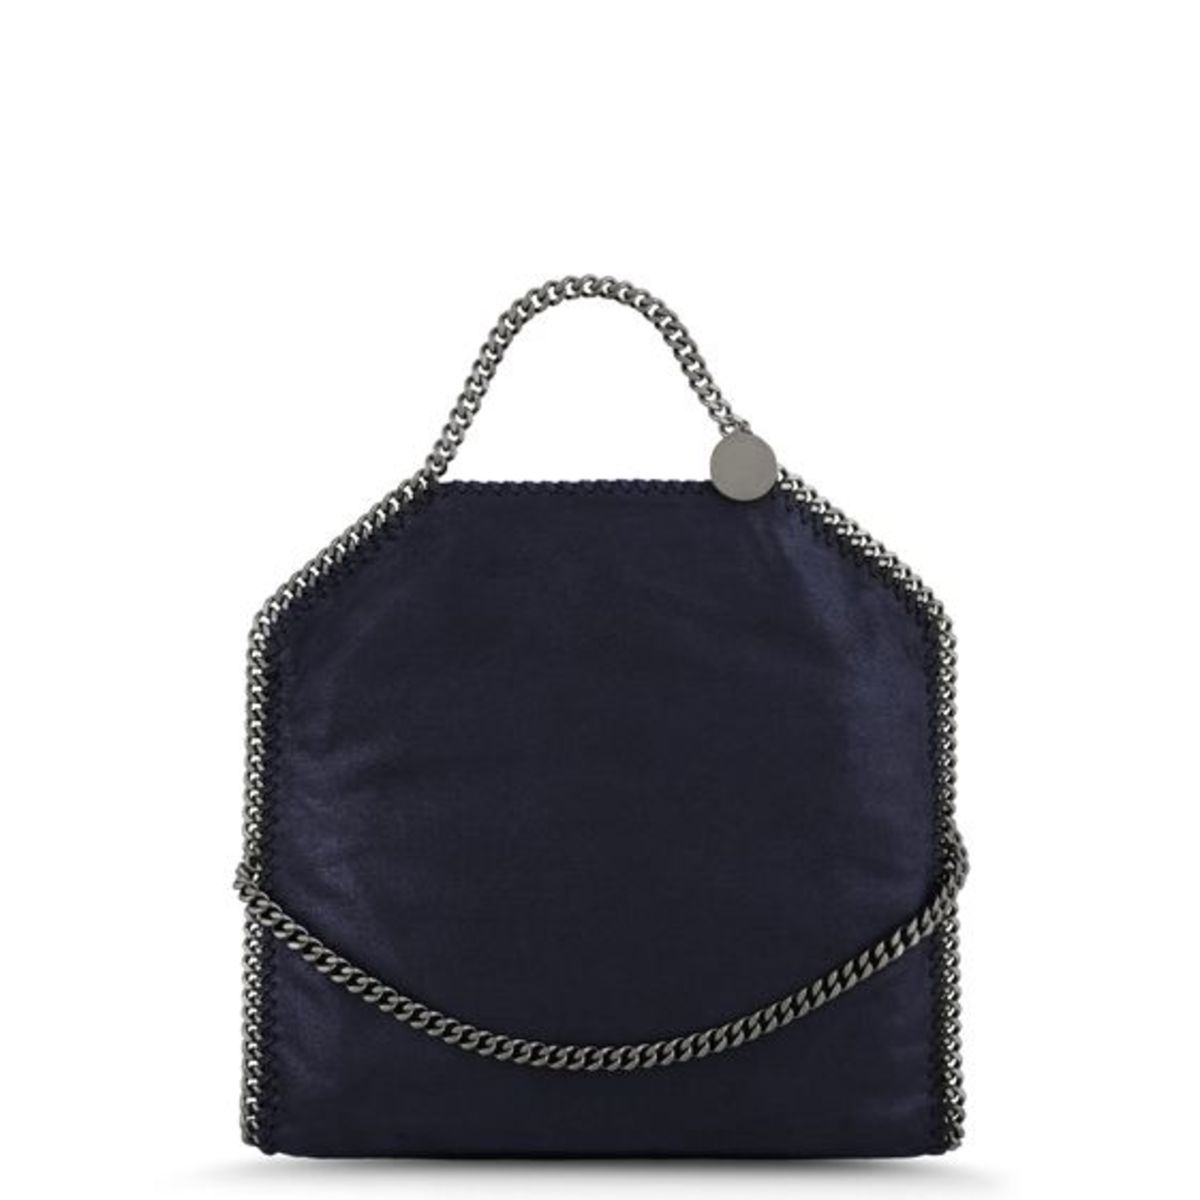 Stella McCartney's Falabella Shggy Deer Foldover tote bag Photo: Stella McCartney website